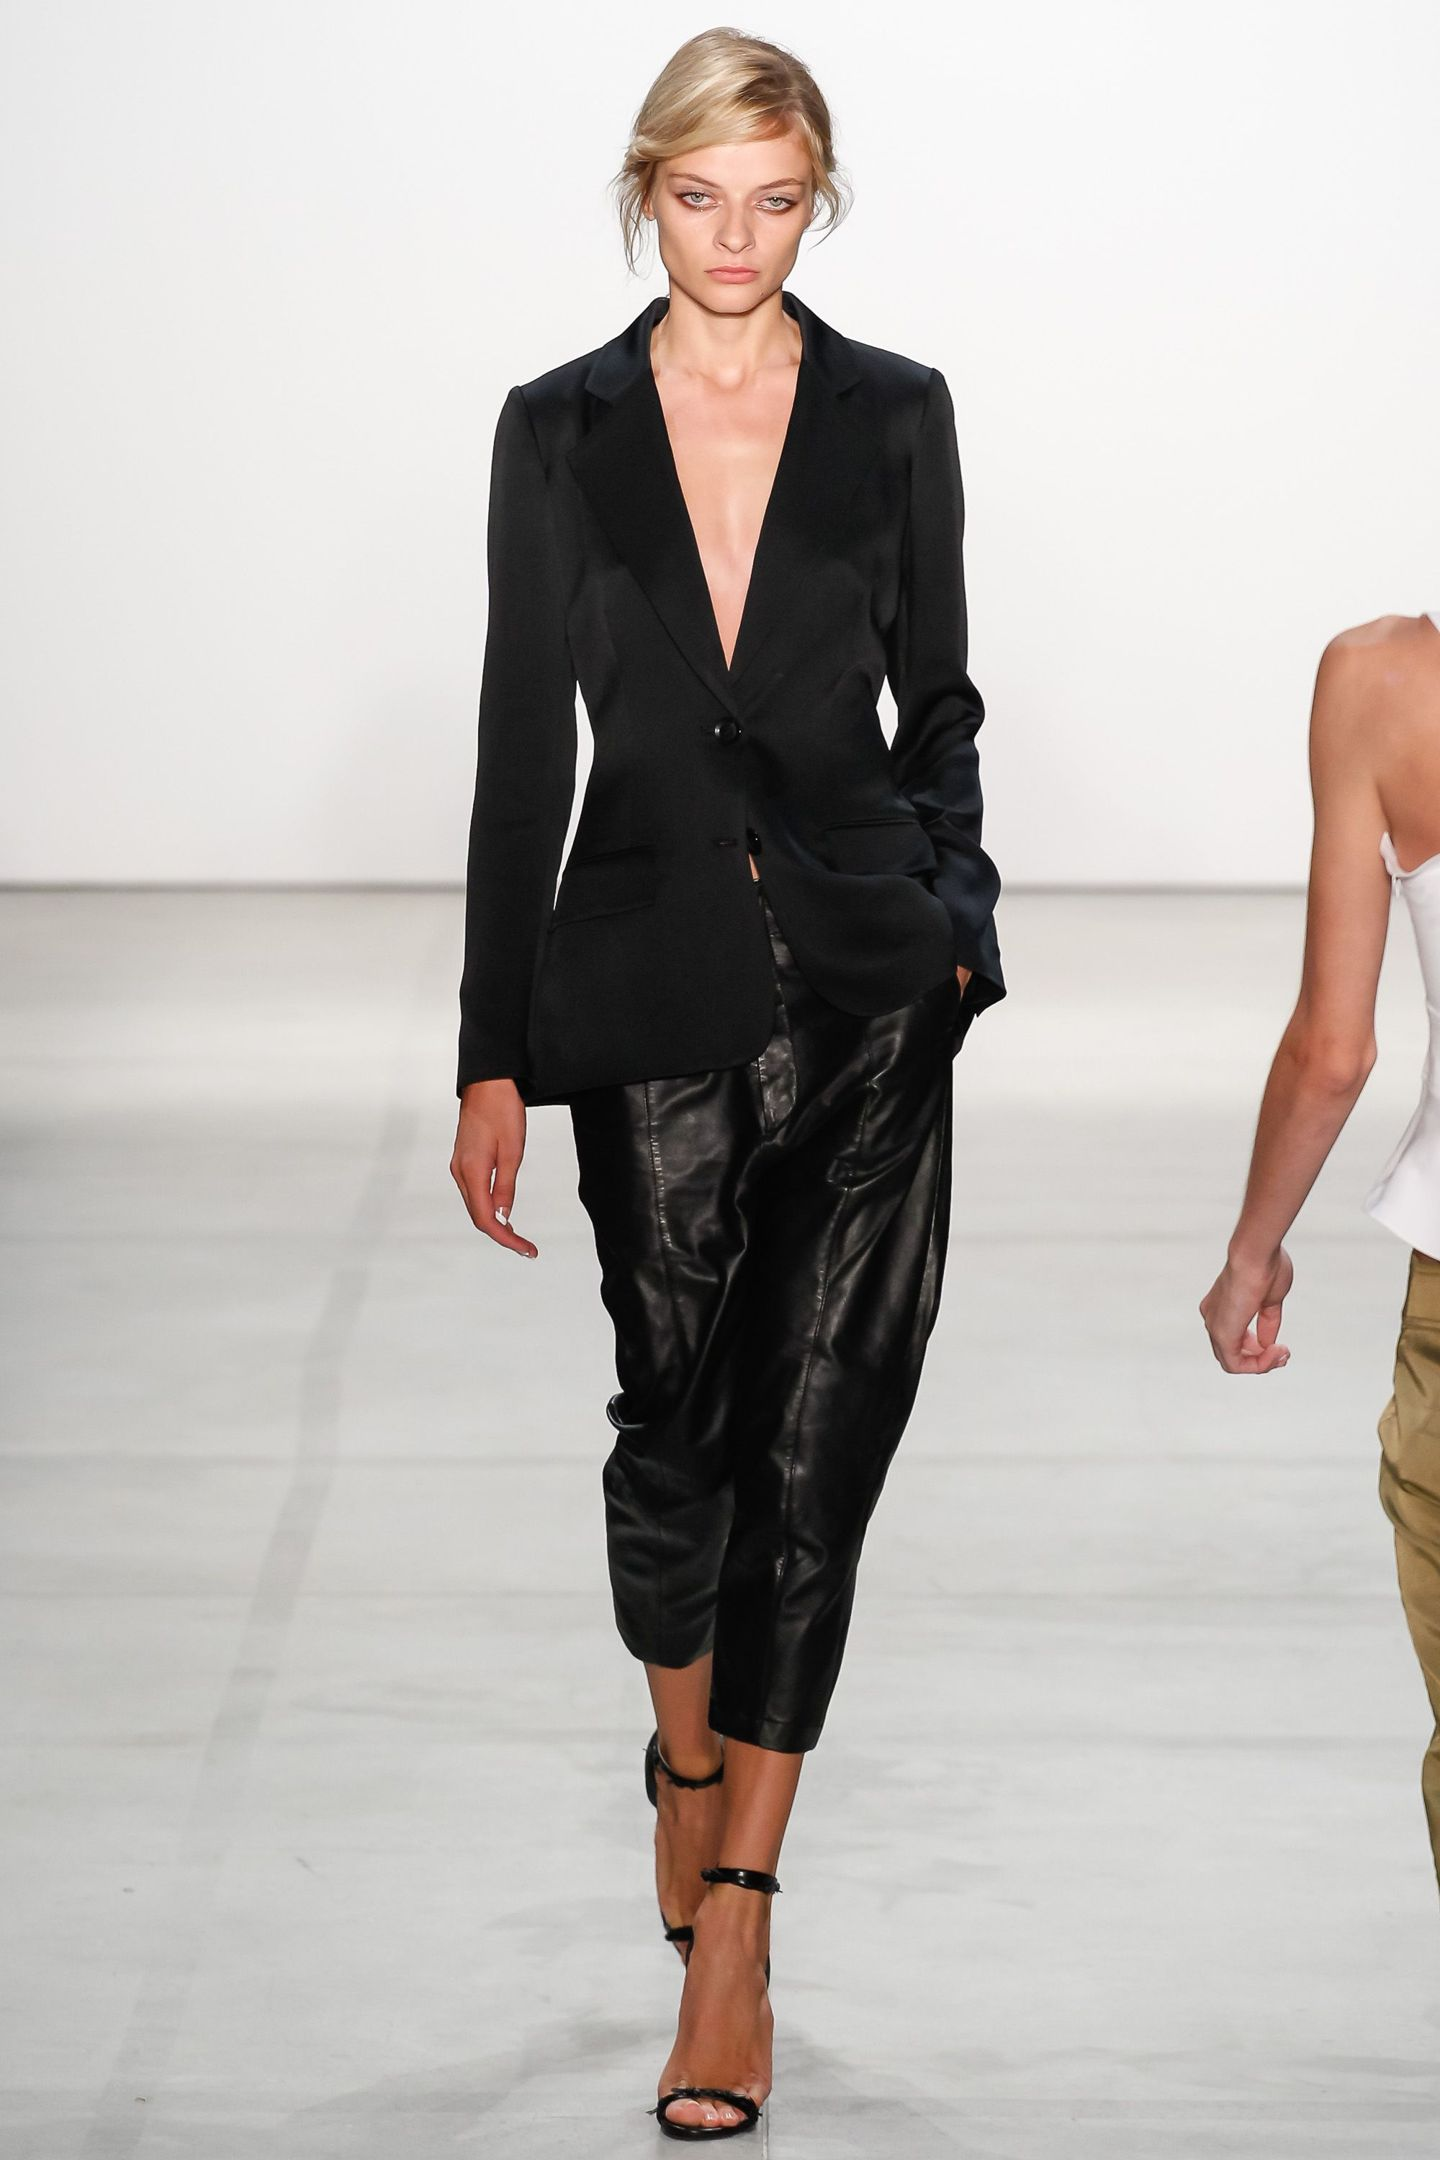 Cropped Leather Pants For Fall